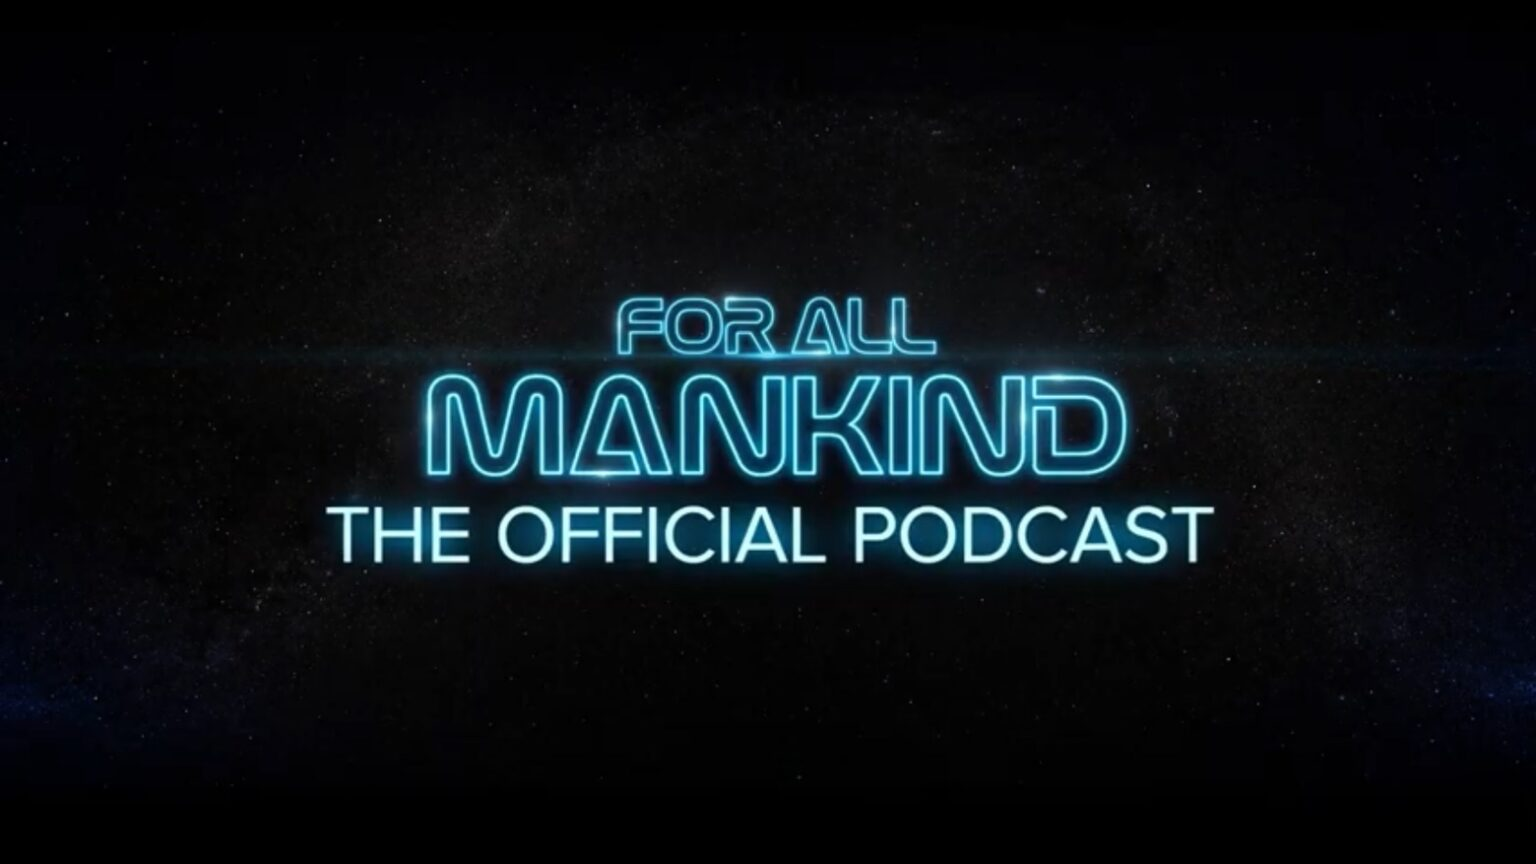 'For All Mankind: The Official Podcast' debuted Friday on Apple Podcasts